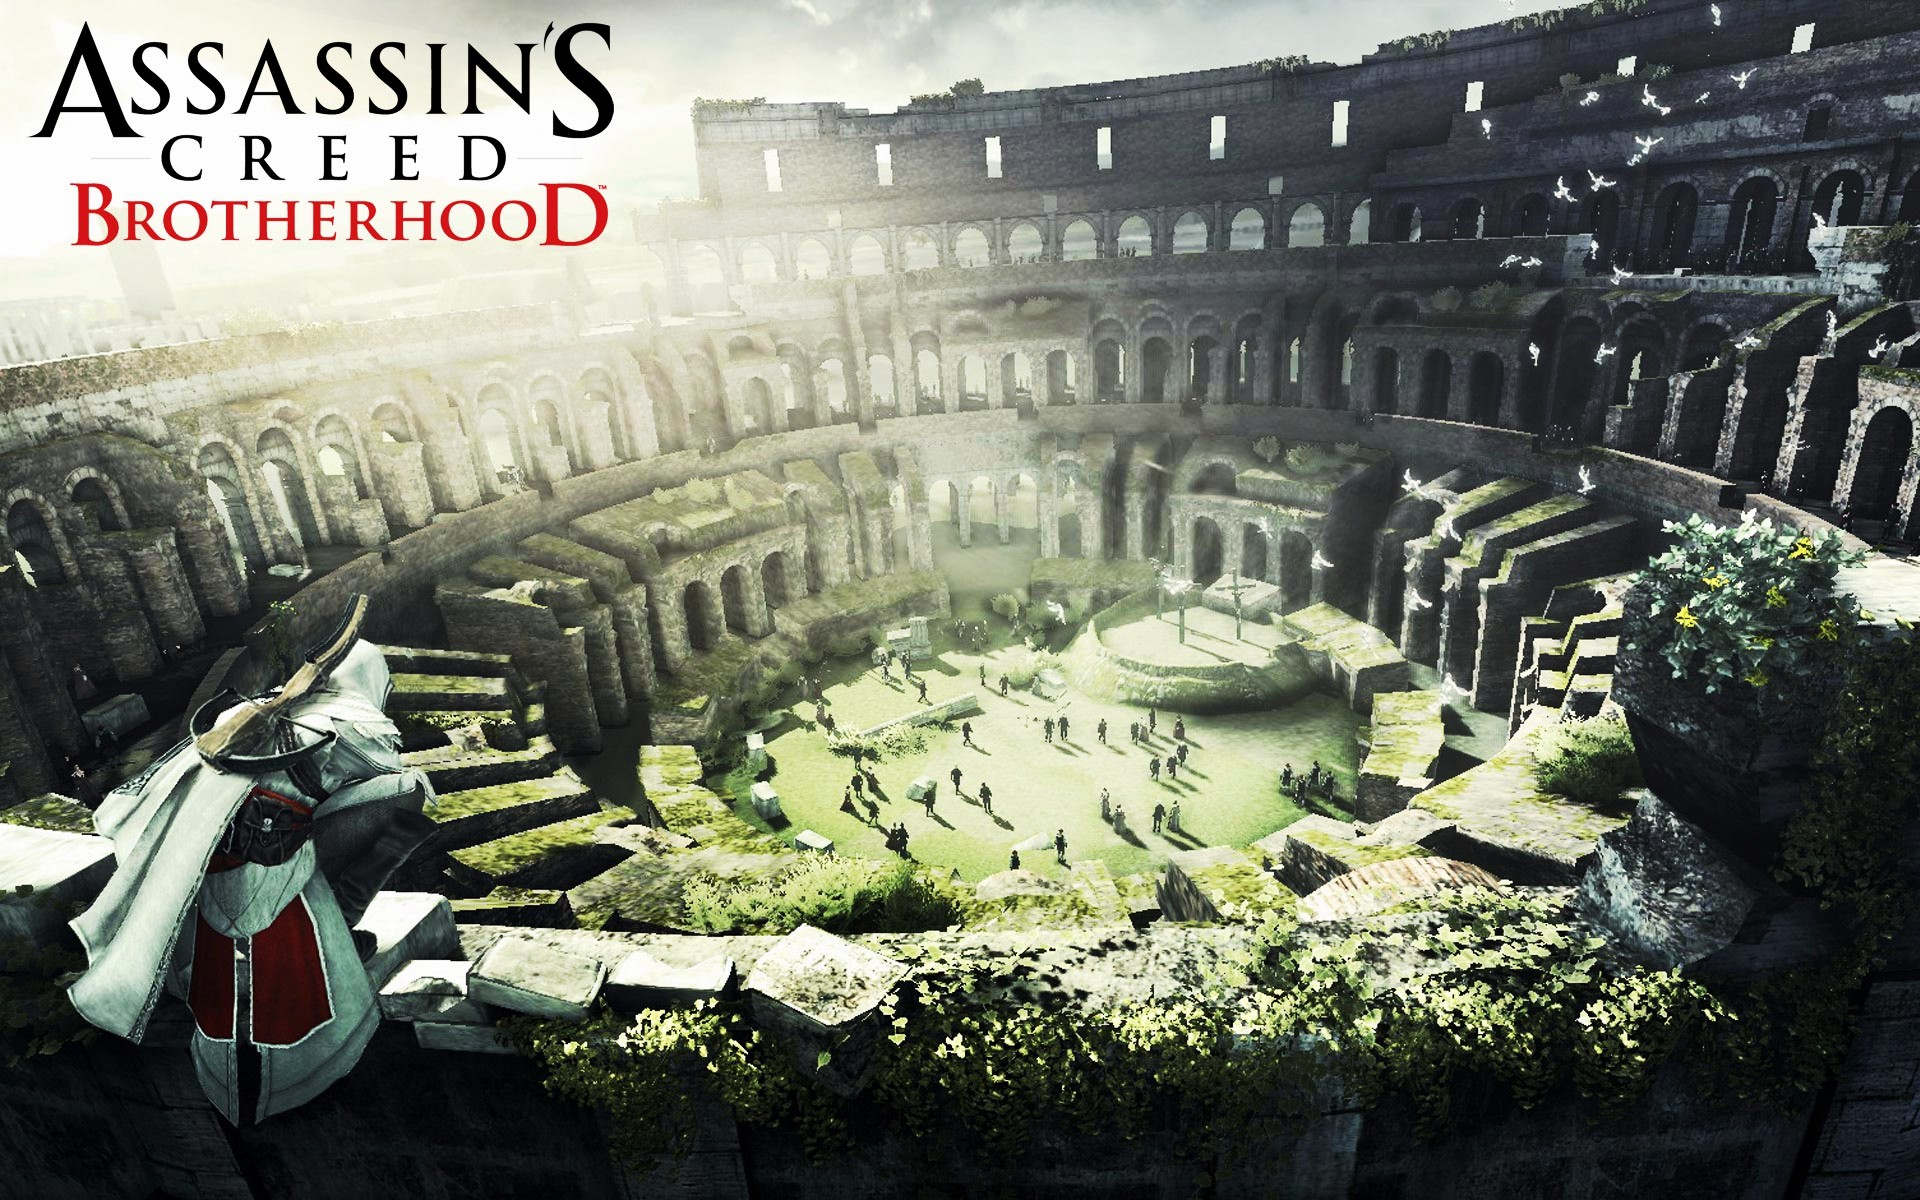 click to free download the wallpaper--Free Download TV & Movies Post - Assassin's Creed Brotherhood in Pixel of 1920x1200, All Men Are Brothers 1920X1200 free wallpaper download